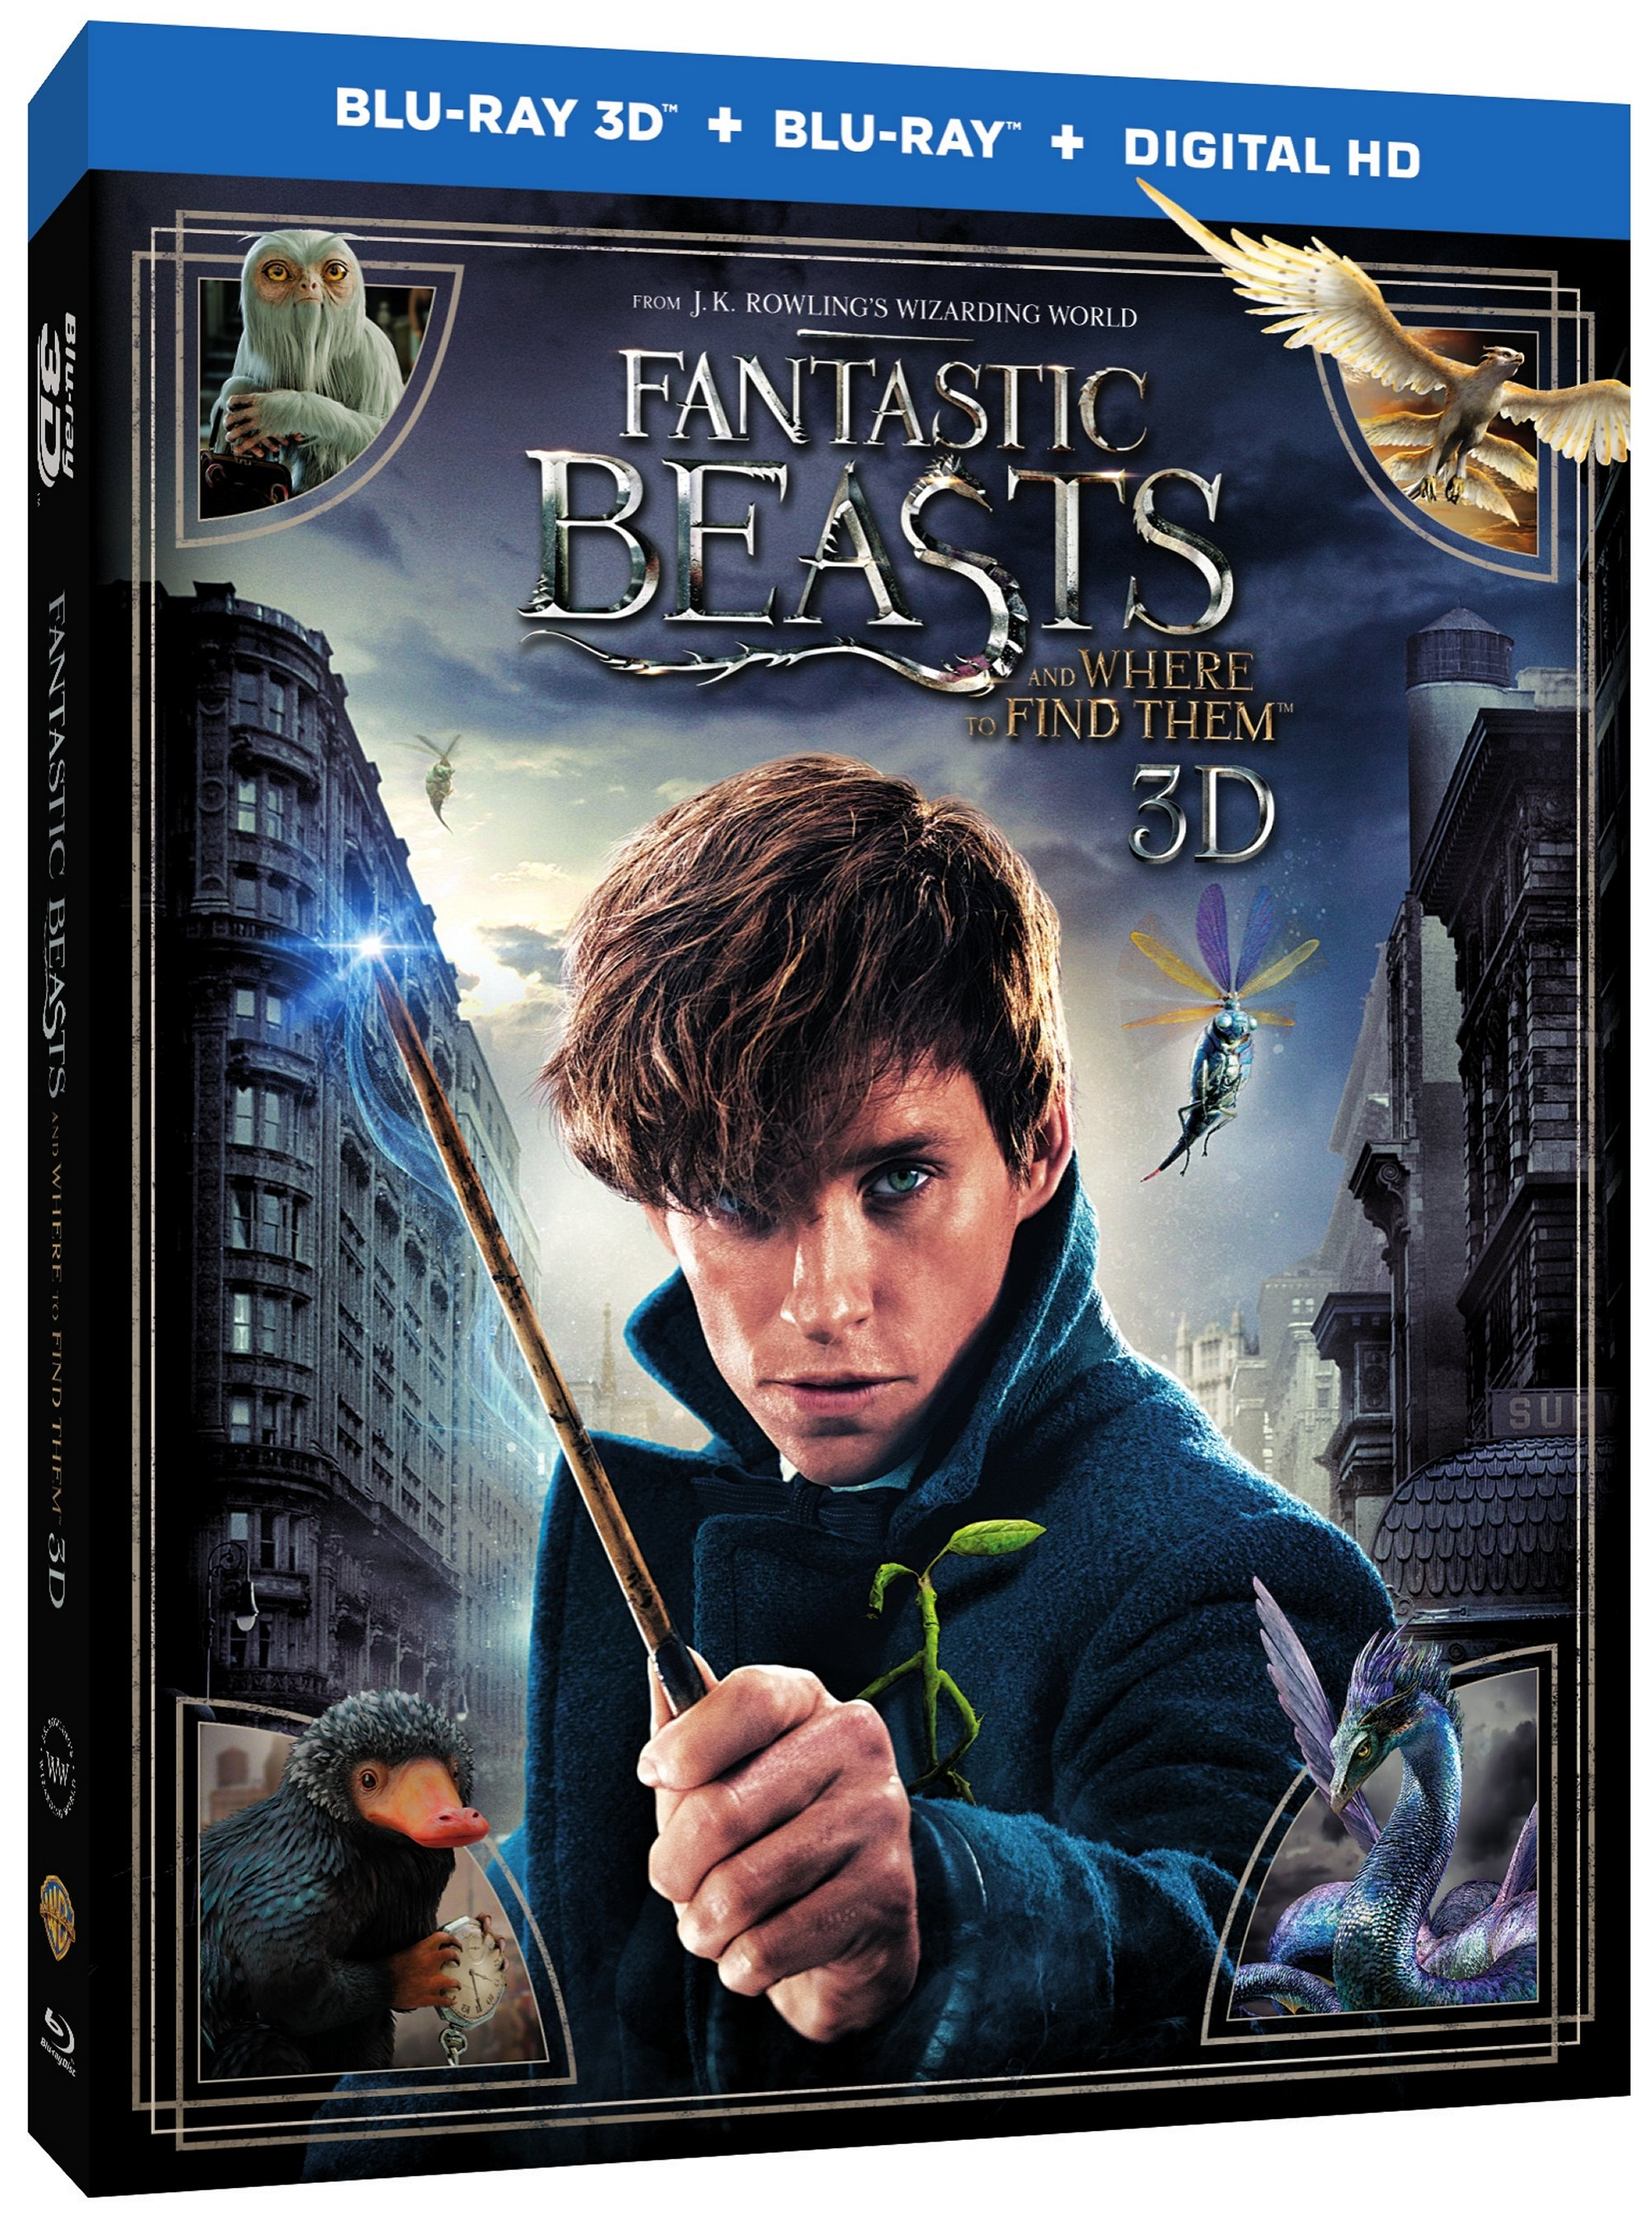 FANTASTIC BEAST AND WHERE TO FIND THEM Blu-ray